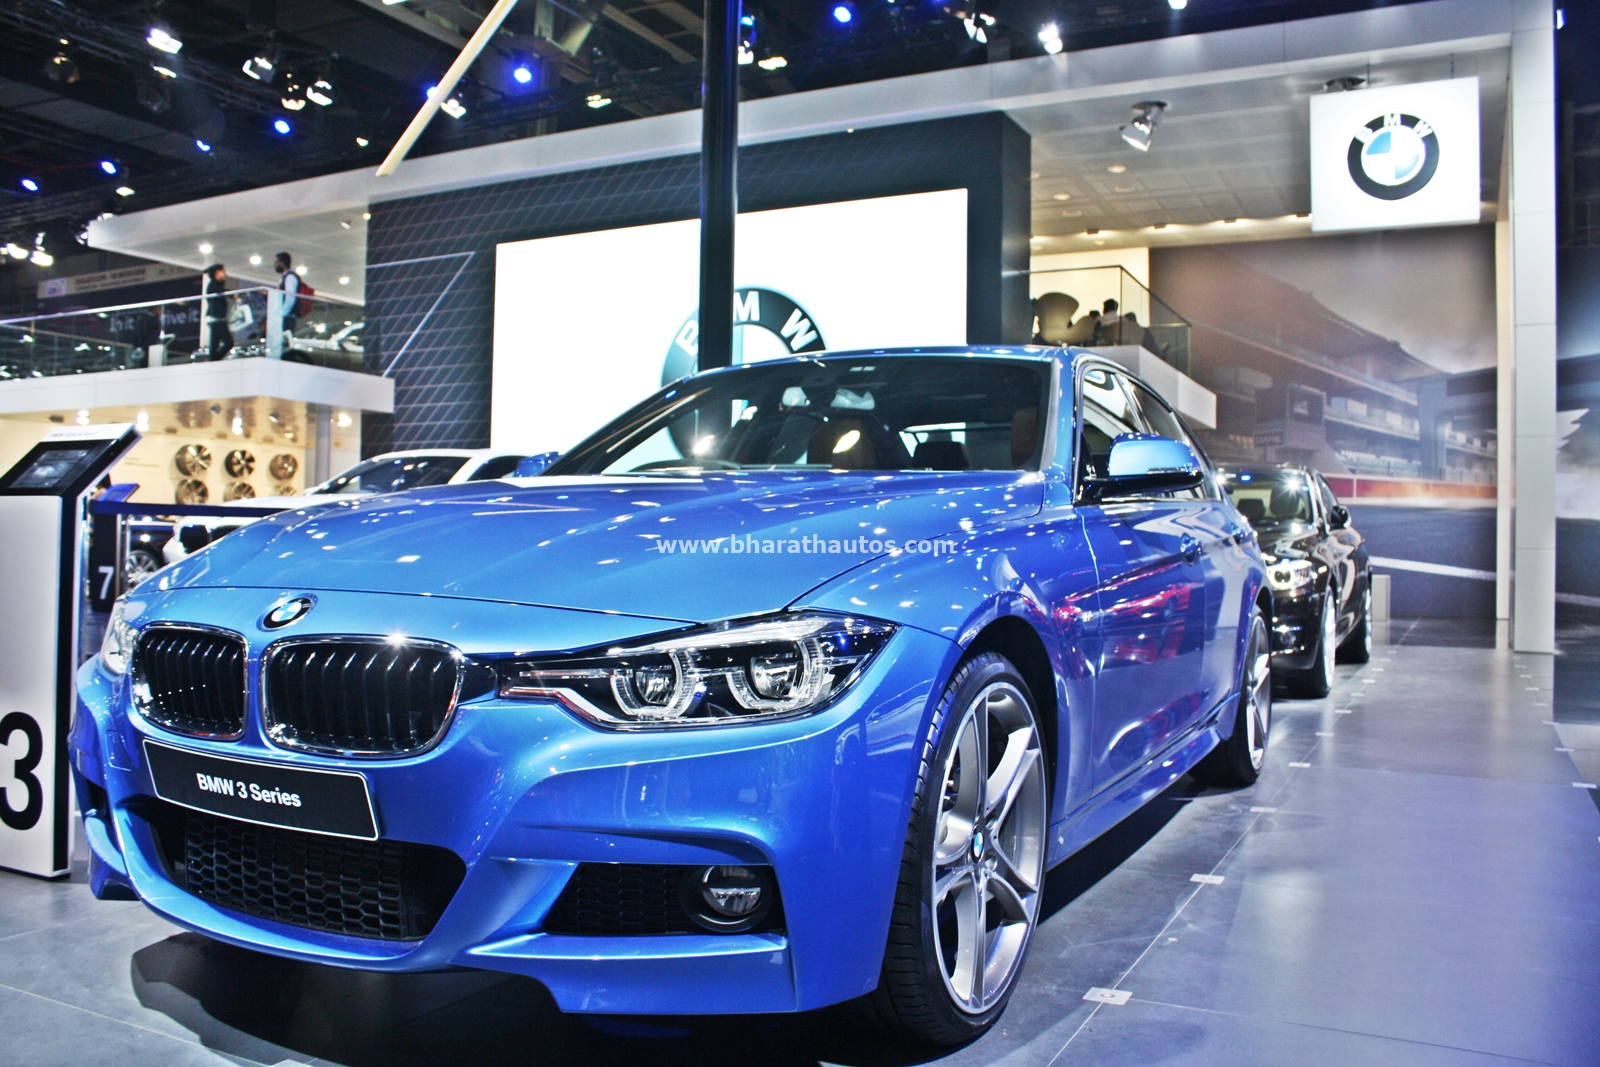 bmw 3 series facelift makes indian debut from 2016 auto expo. Black Bedroom Furniture Sets. Home Design Ideas